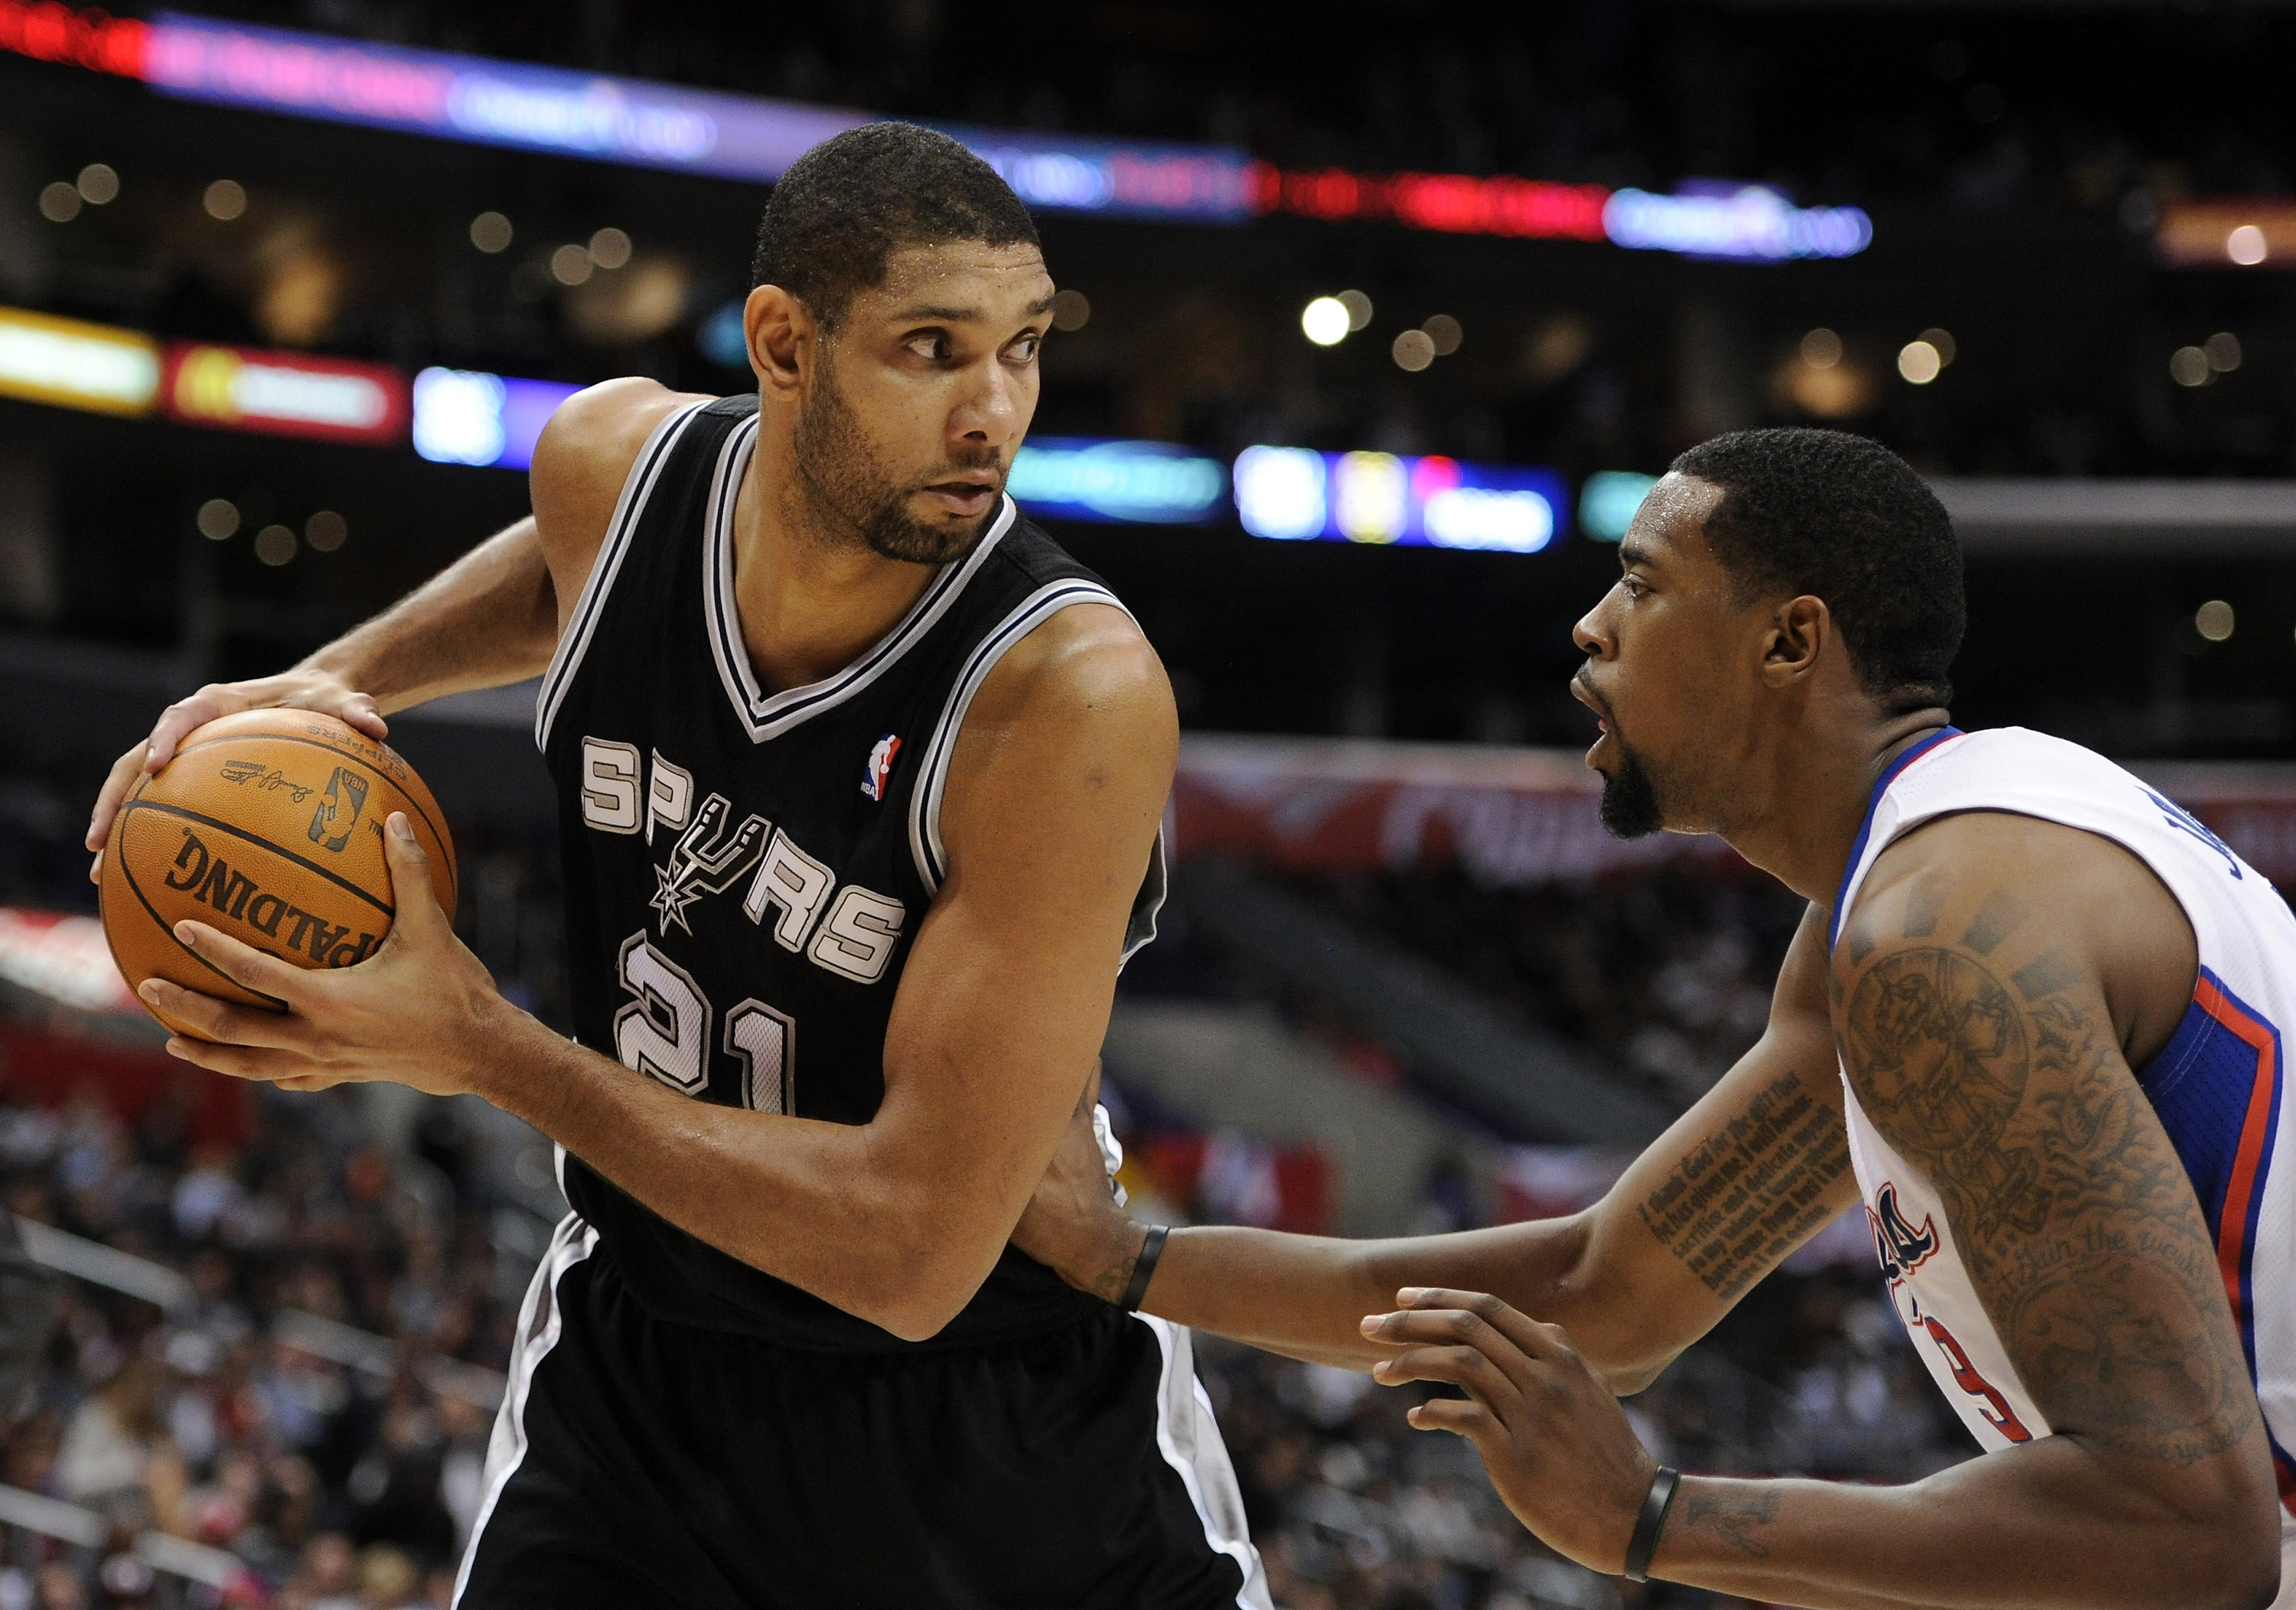 LOS ANGELES, CA - DECEMBER 01:  Tim Duncan #21 of the San Antonio Spurs pauses with the ball in front of DeAndre Jordan #9 of the Los Angeles Clippers at the Staples Center on December 1, 2010 in Los Angeles, California.  NOTE TO USER: User expressly ackn